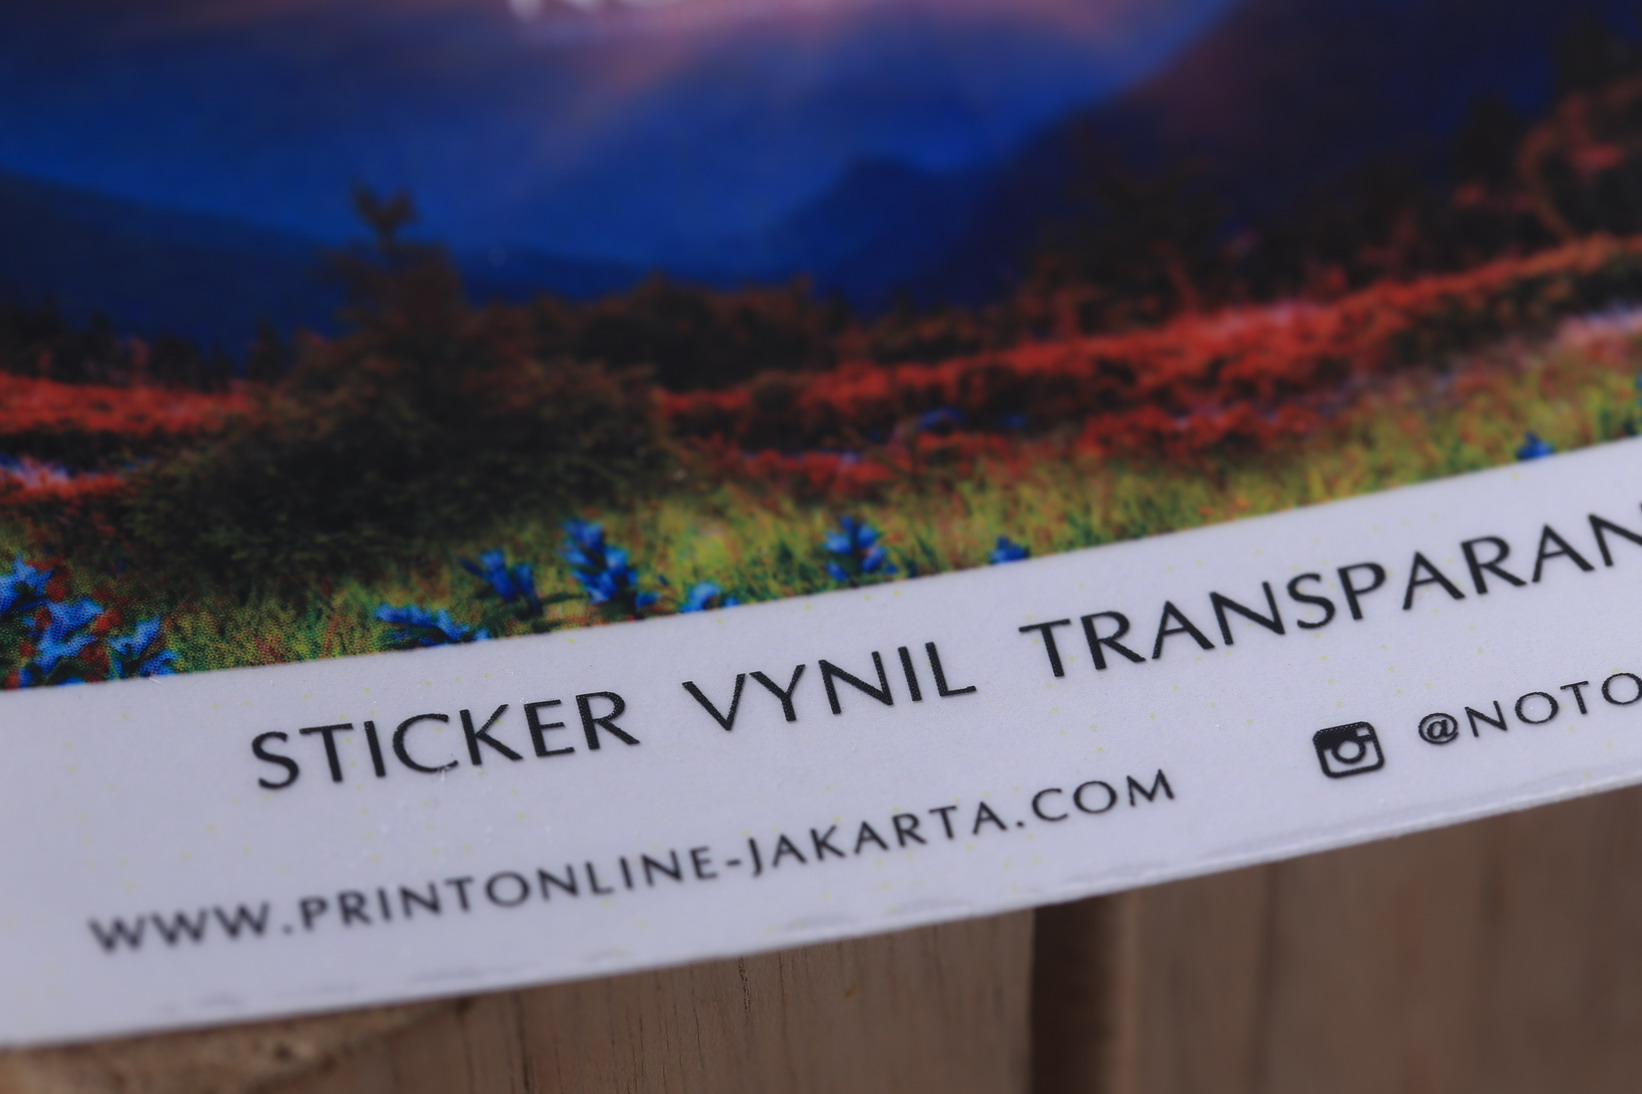 Sticker Vynil Transparant